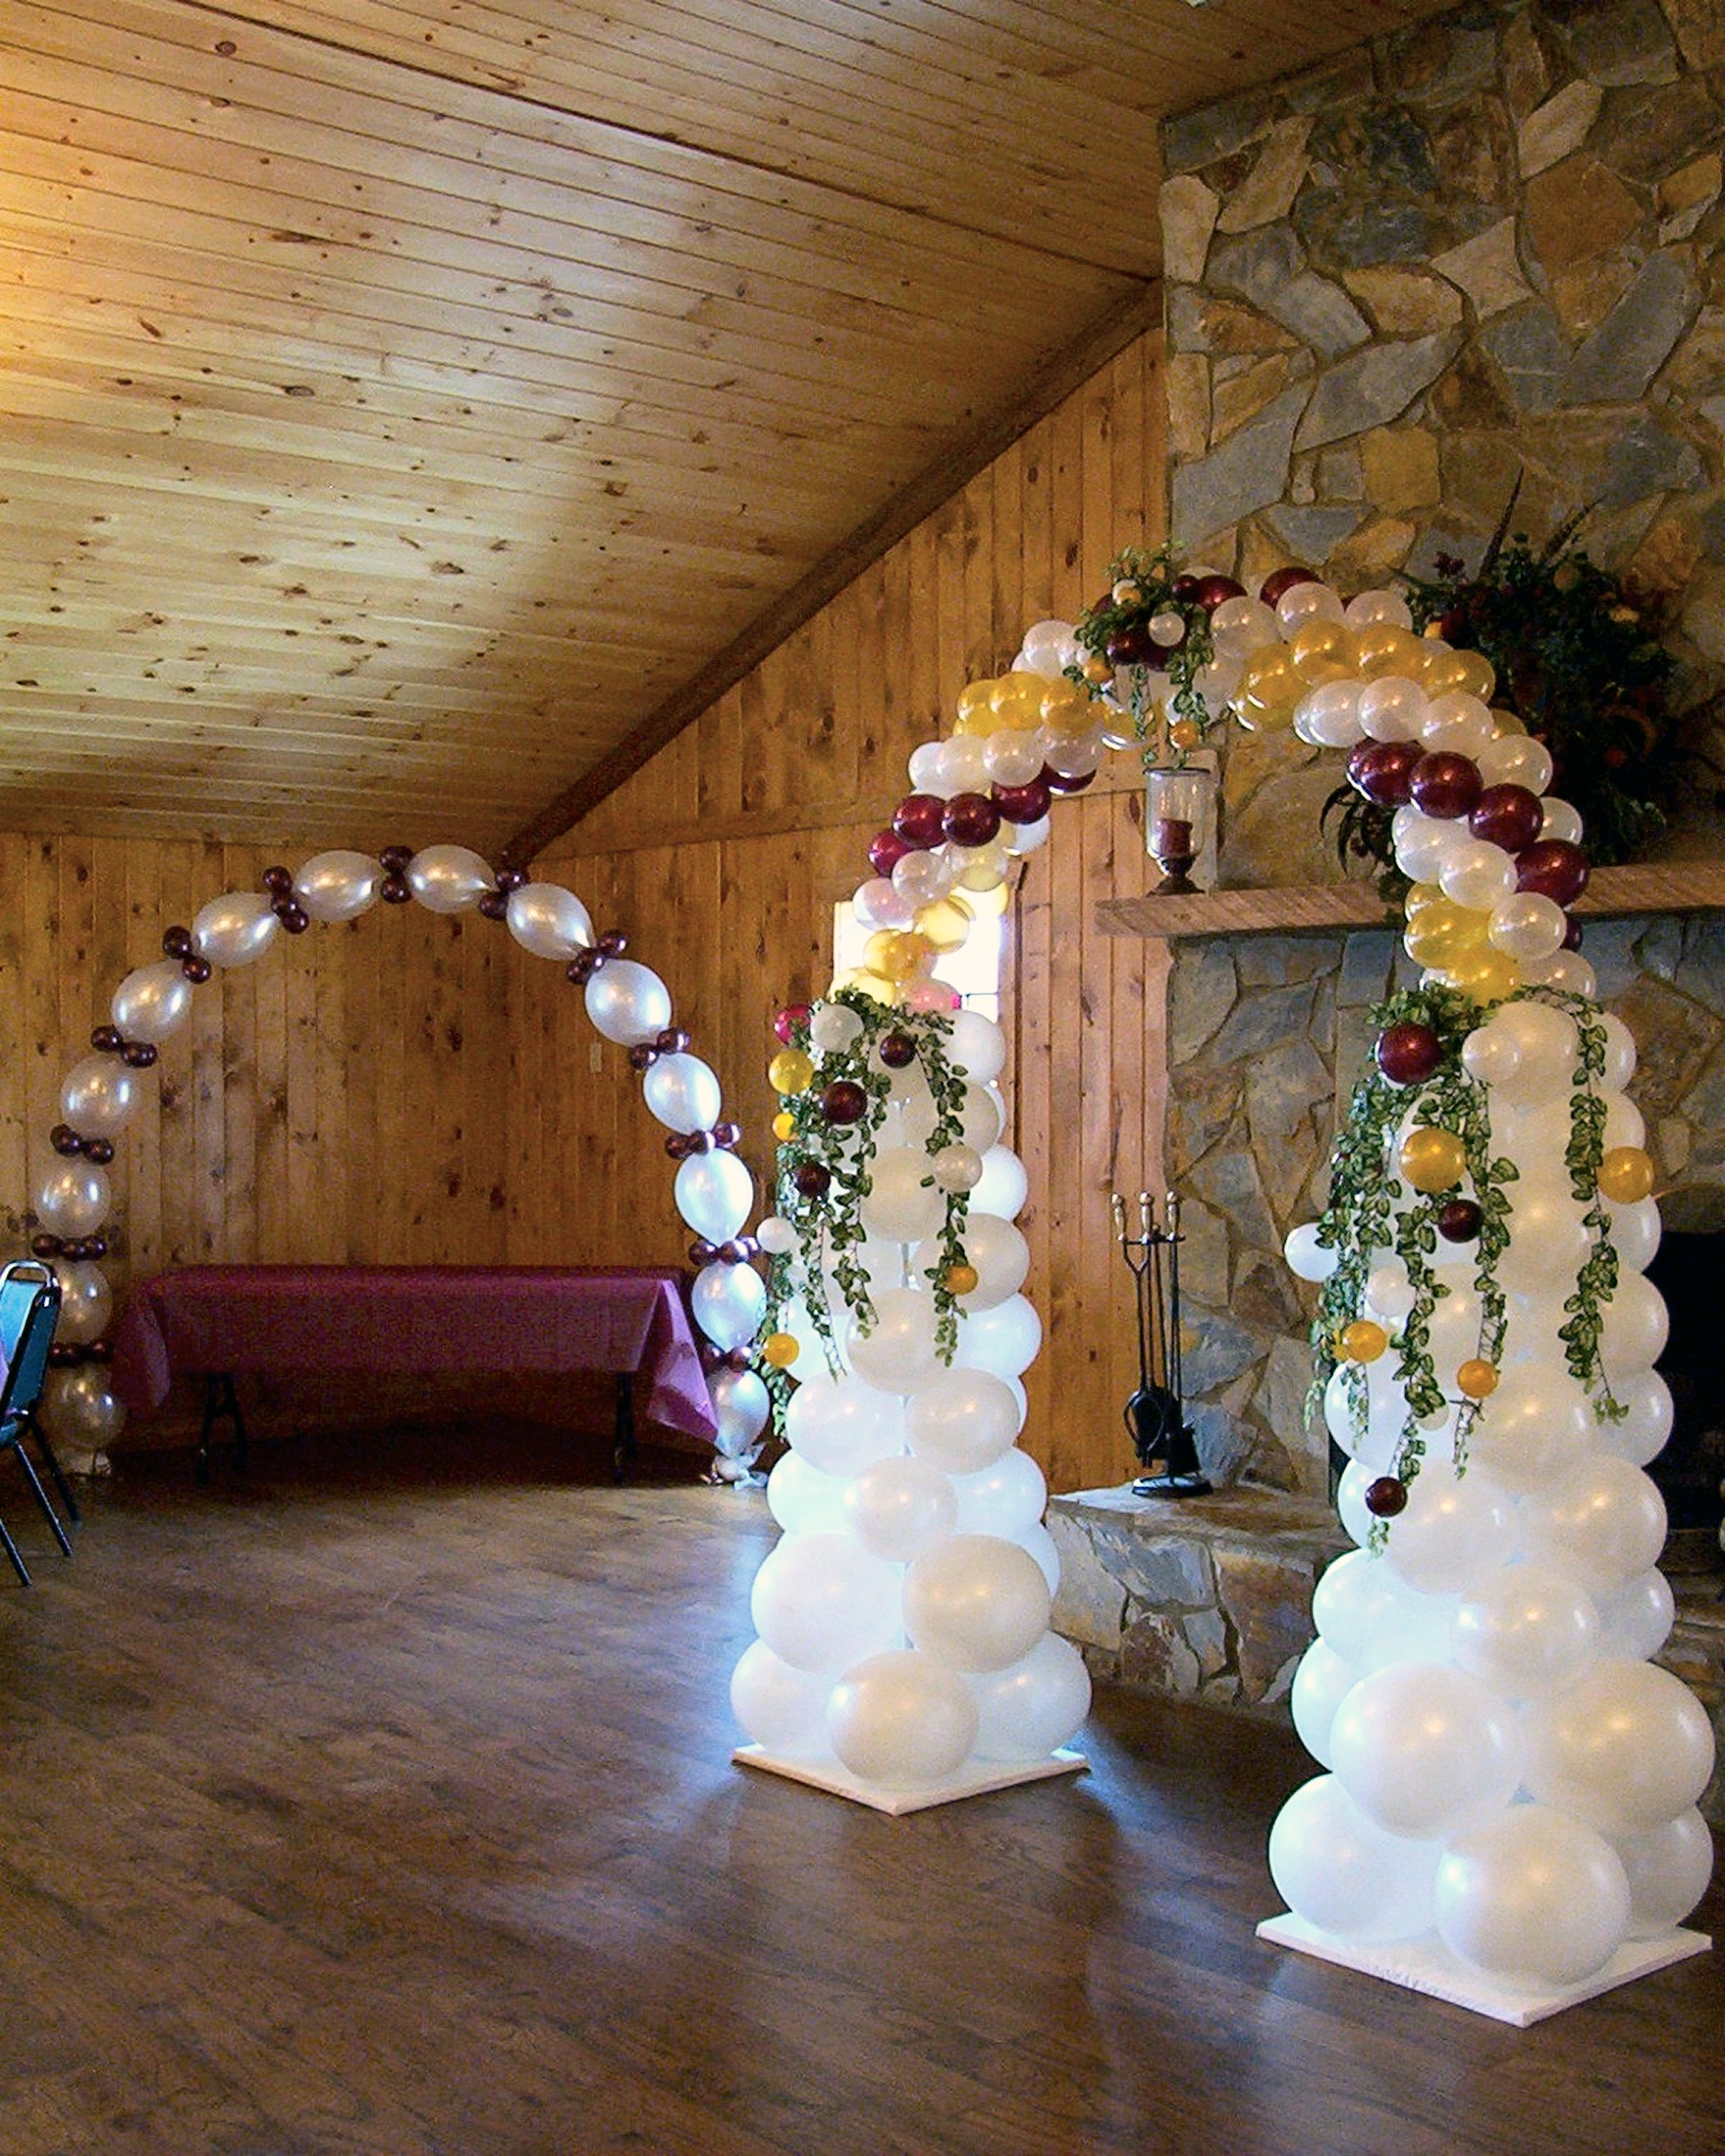 Balloon arch for wedding - Balloon Arch For Wedding 40